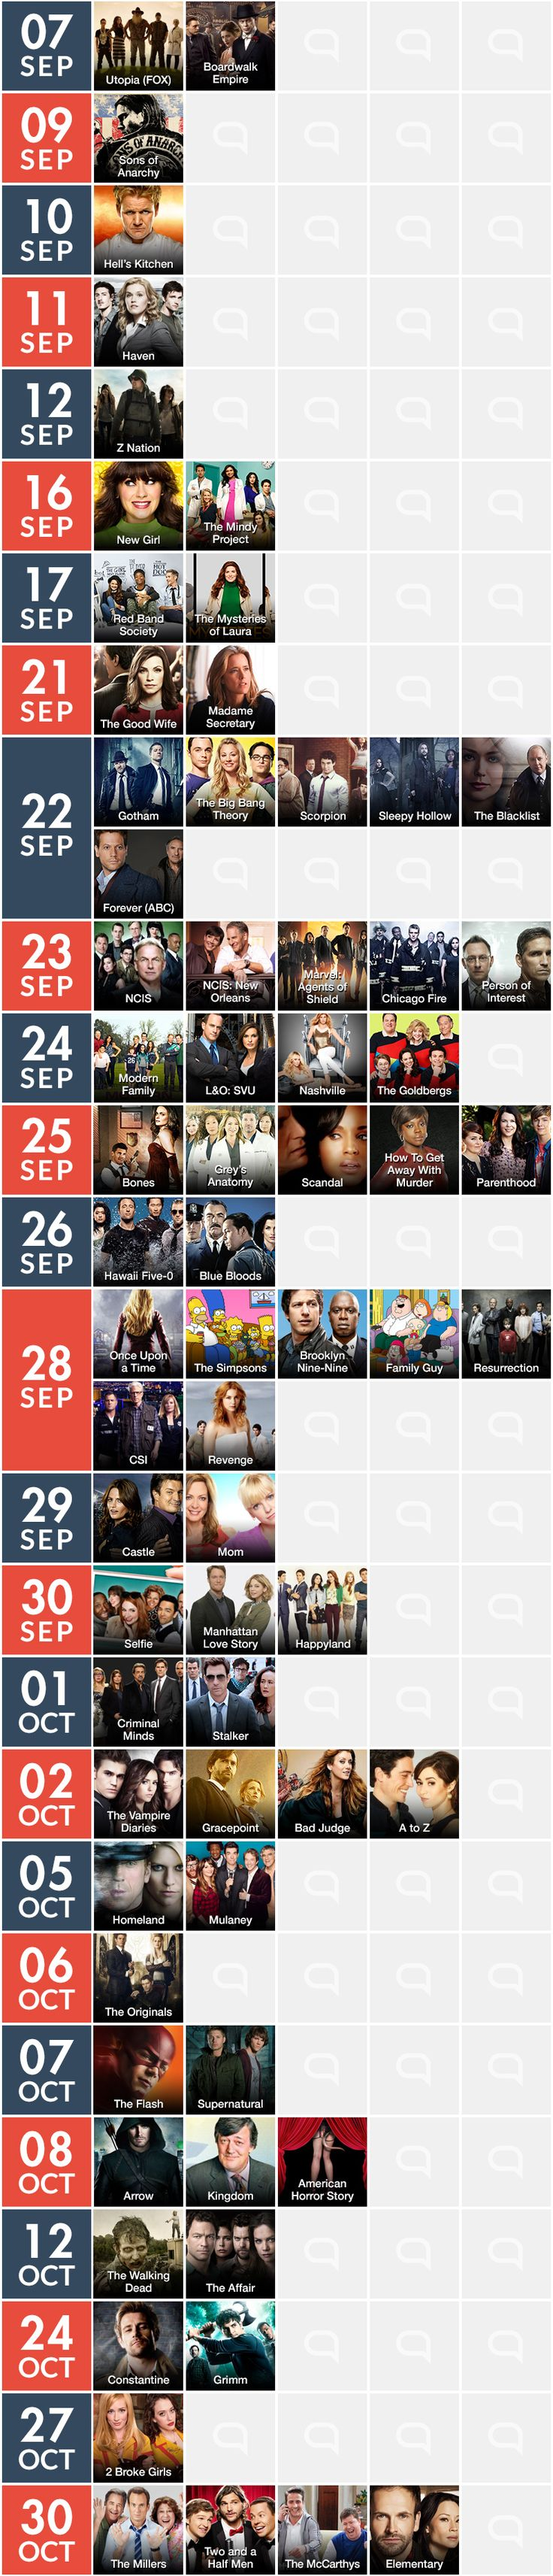 Calendario de series de TV: Fall season 2014